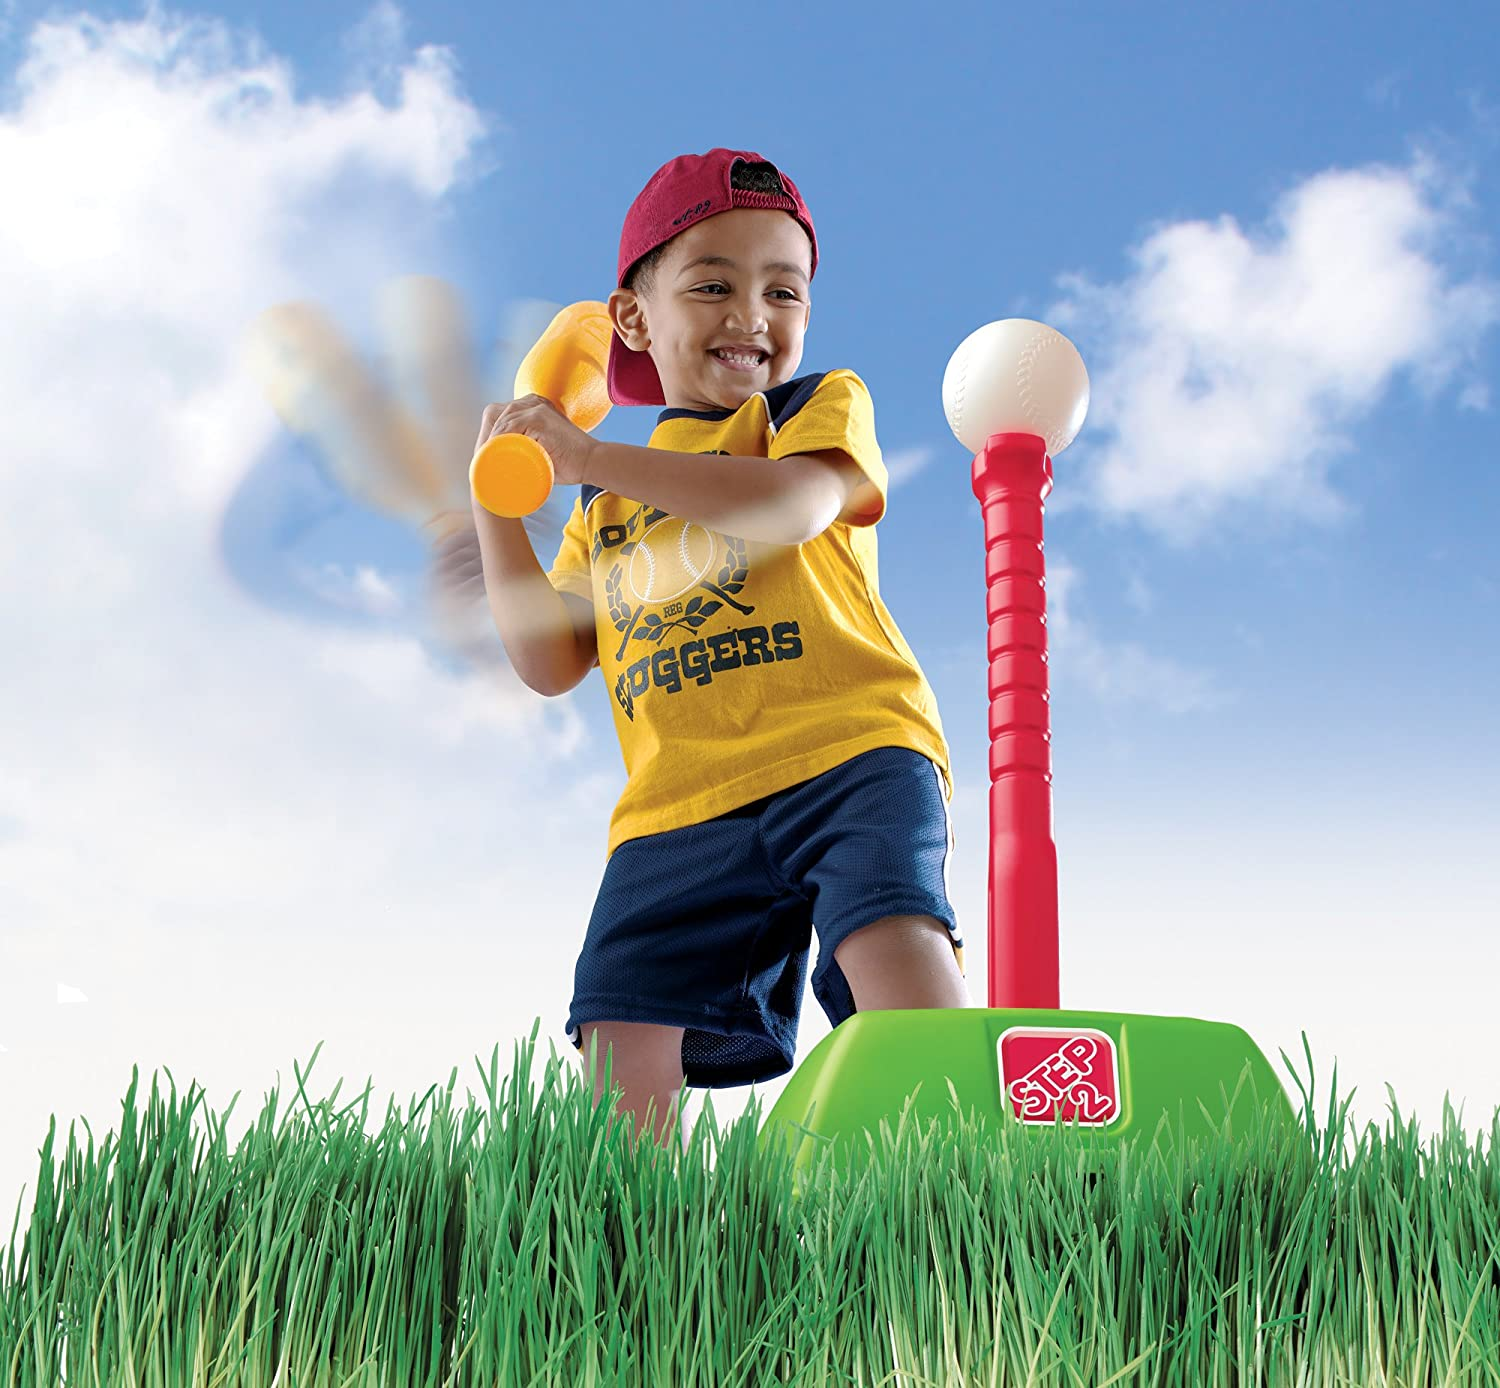 Amazon Step2 2 in 1 T Ball and Golf Set Toy Outdoor Play